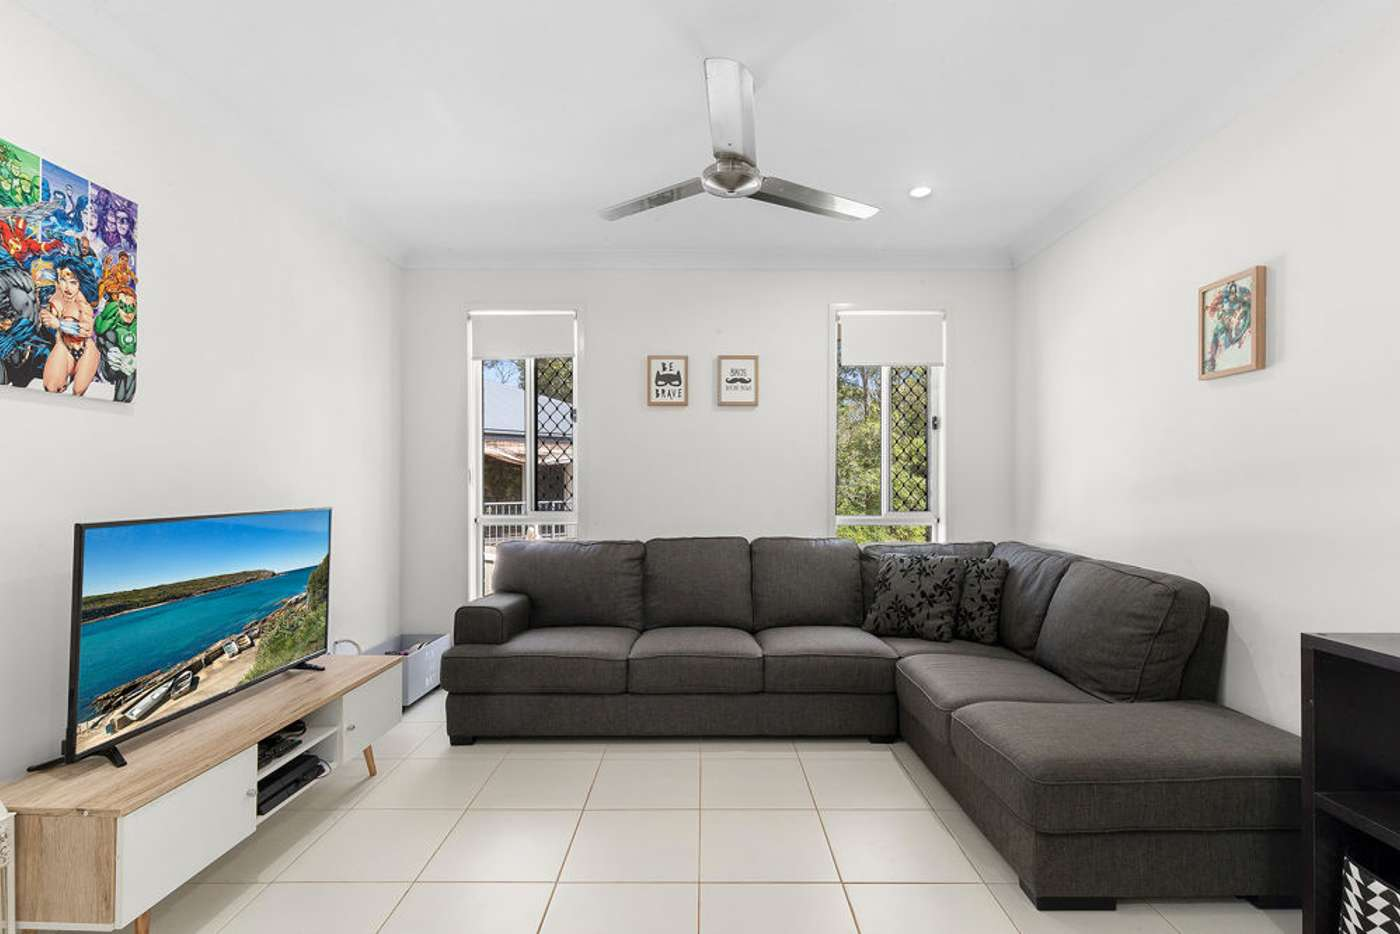 Fifth view of Homely house listing, 75 Lennon Boulevard, Narangba QLD 4504